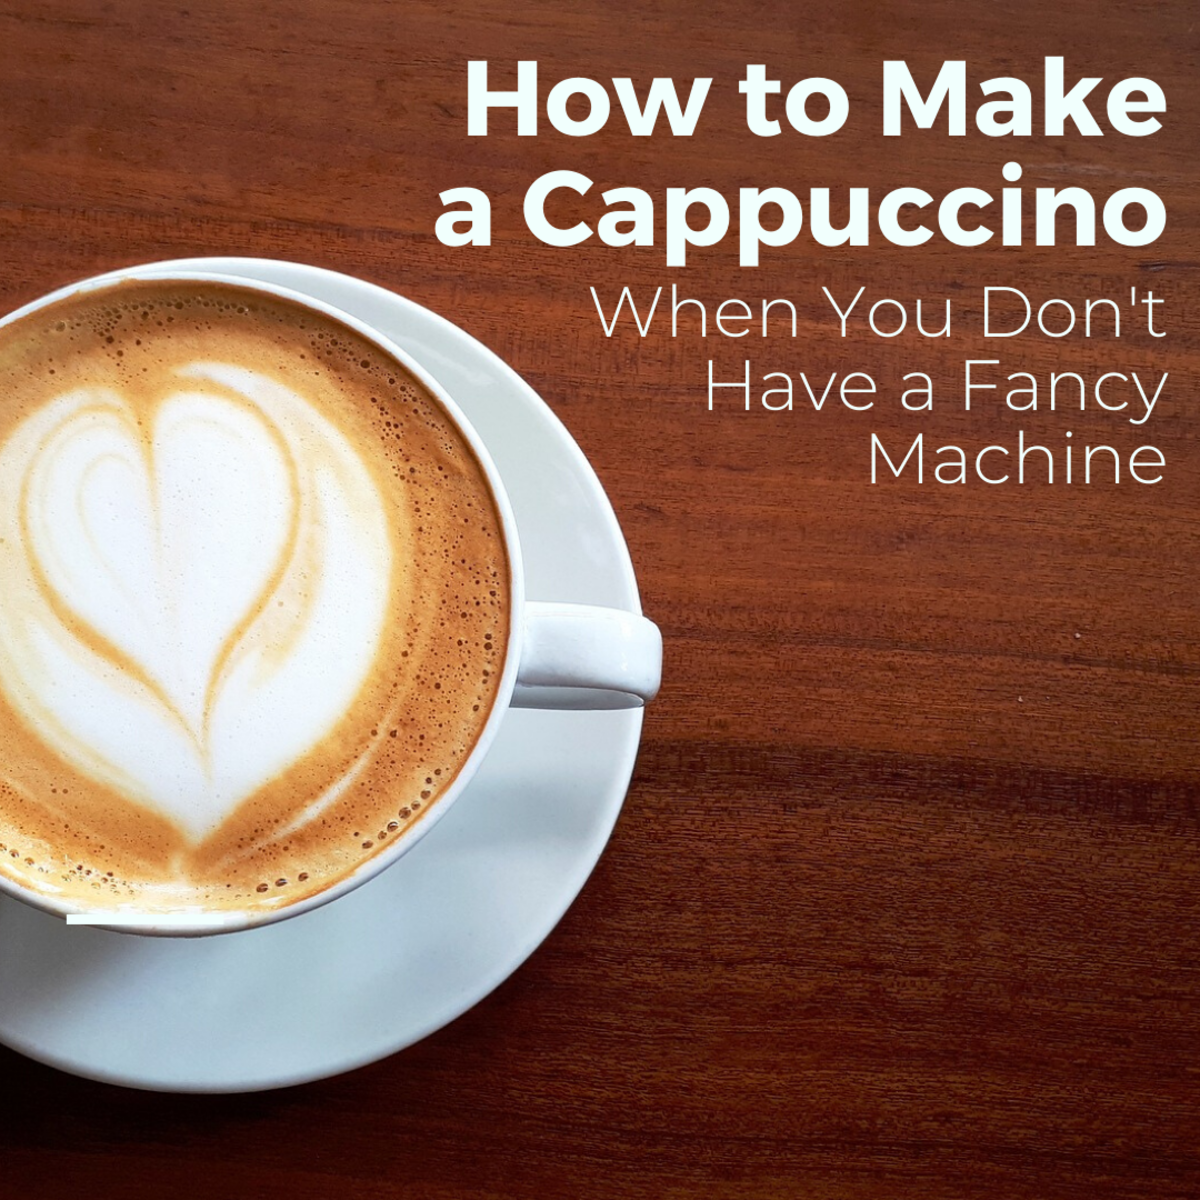 This article will provide you with a recipe for making a quality cappuccino, even if you don't have an espresso machine.